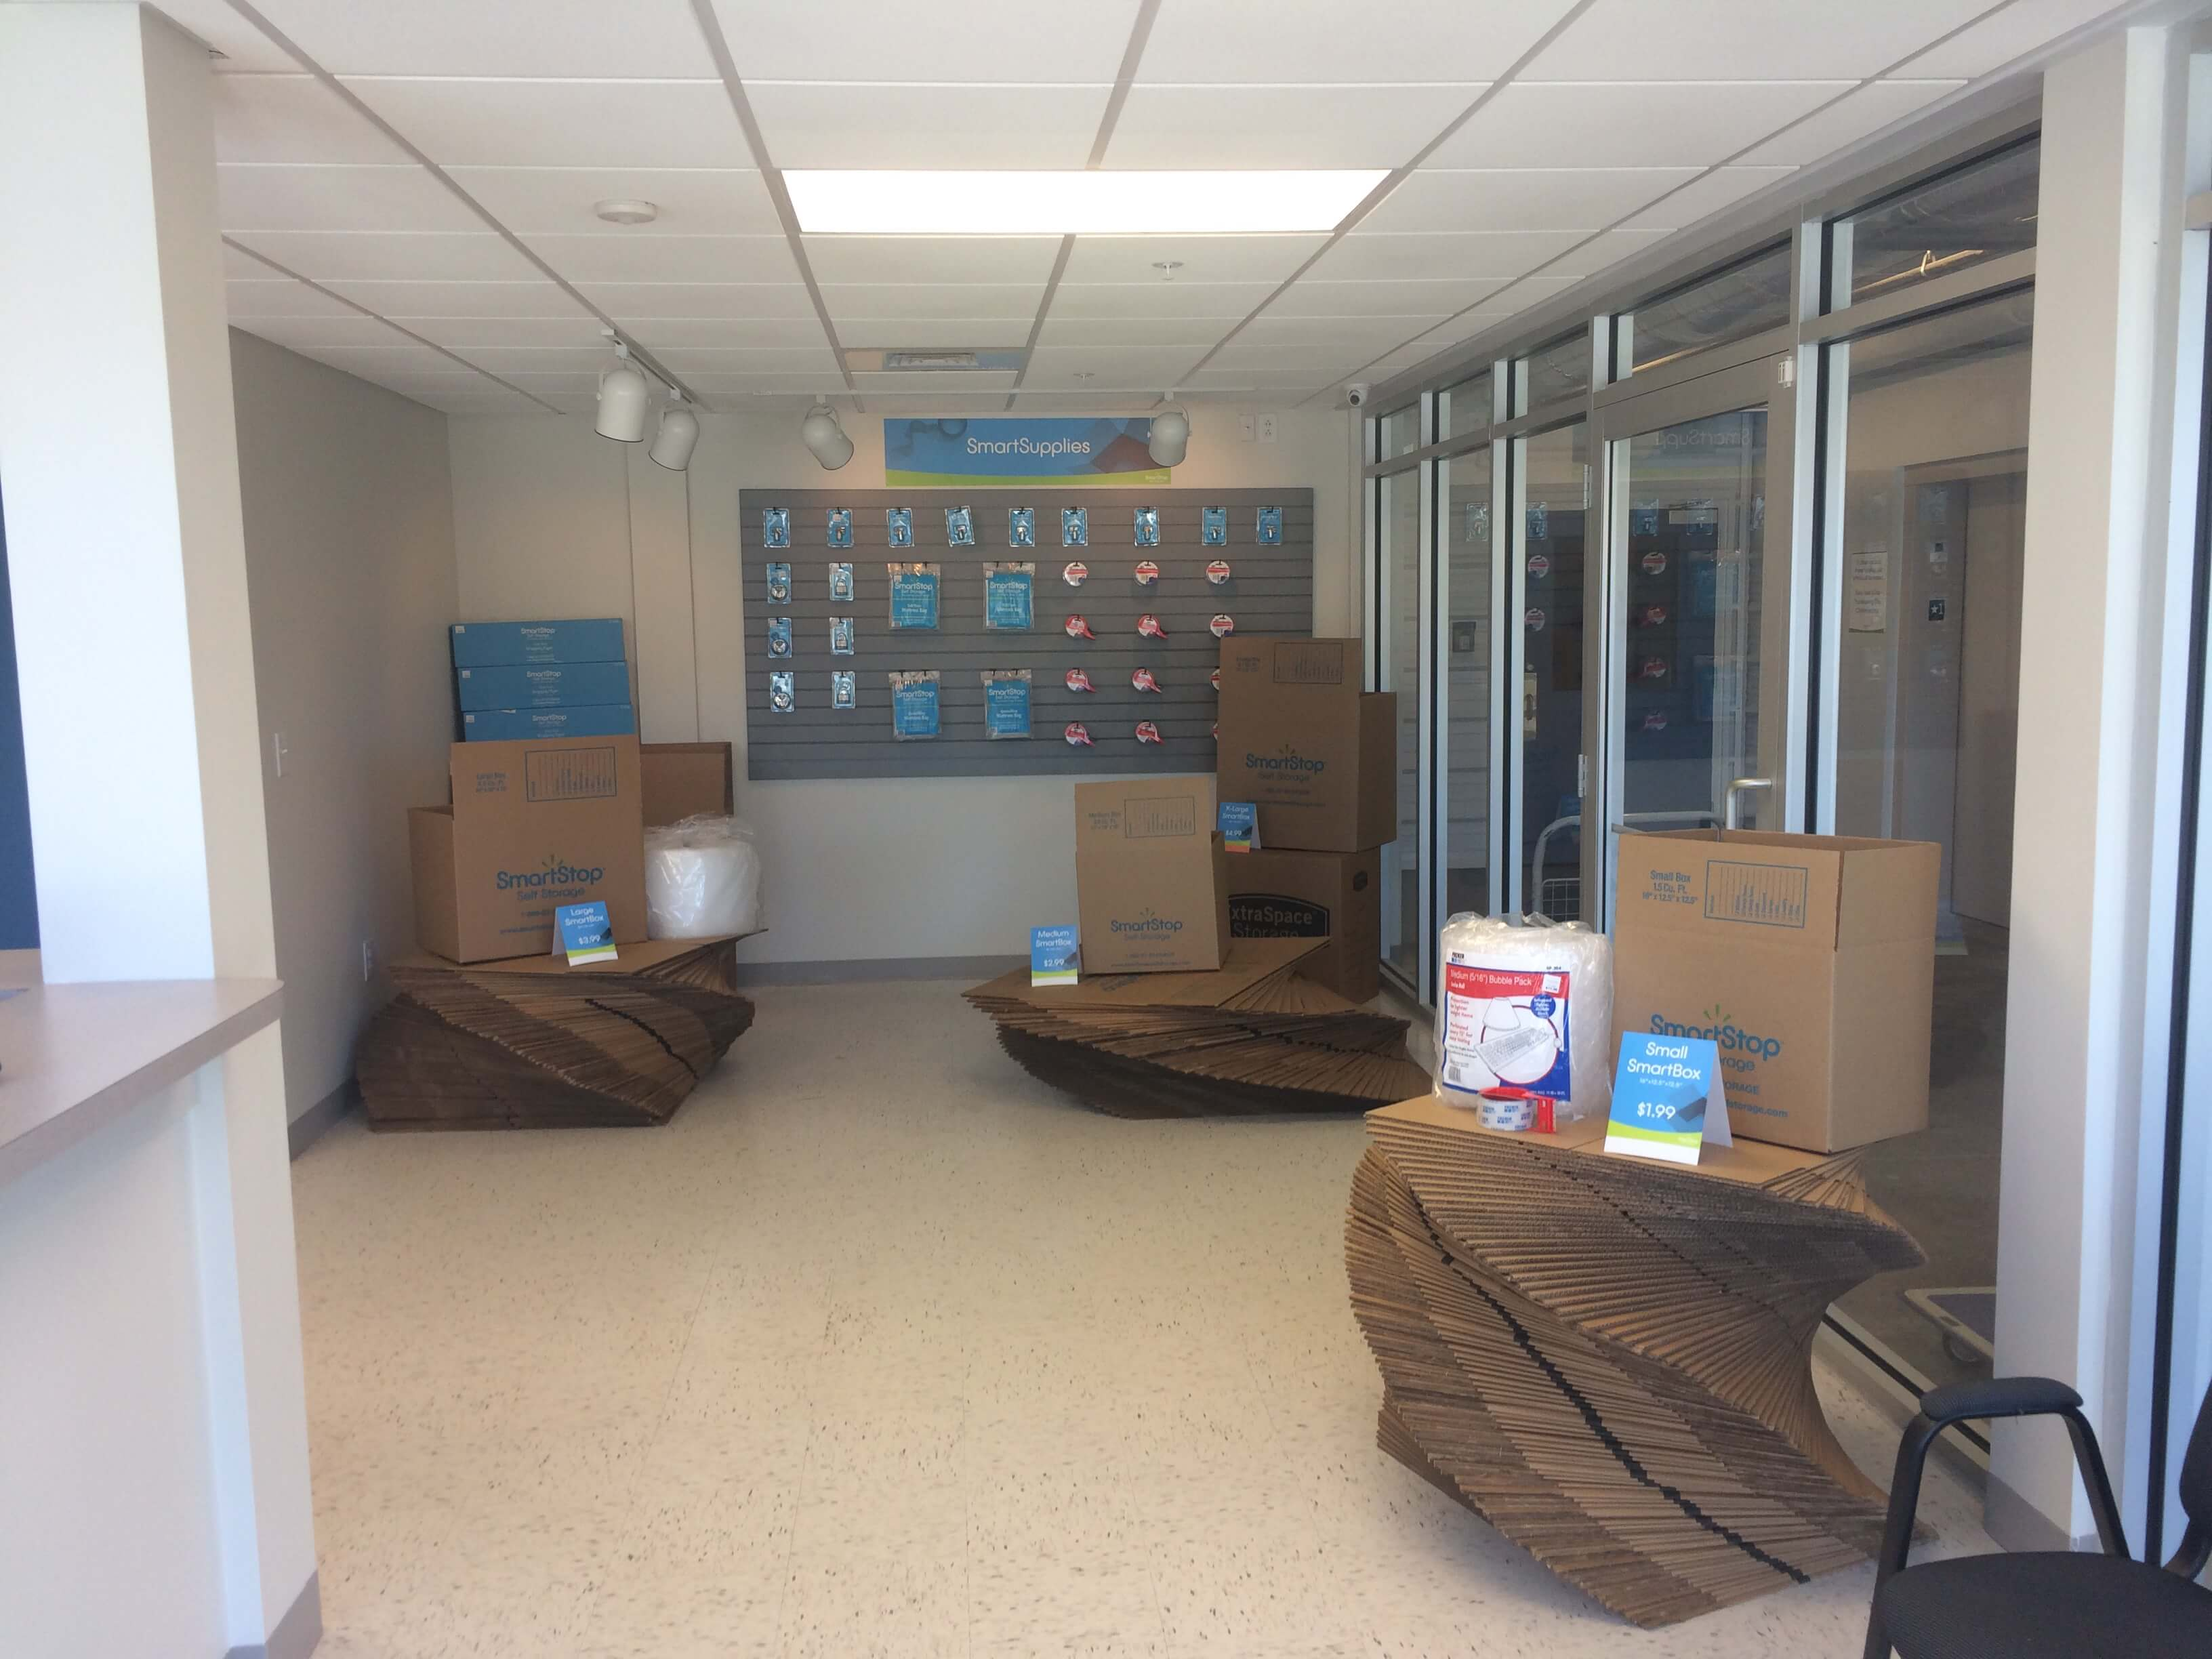 Front desk view of Smart Stop self storage facility located at 701 Wando Park Blvd, Mt Pleasant South Carolina